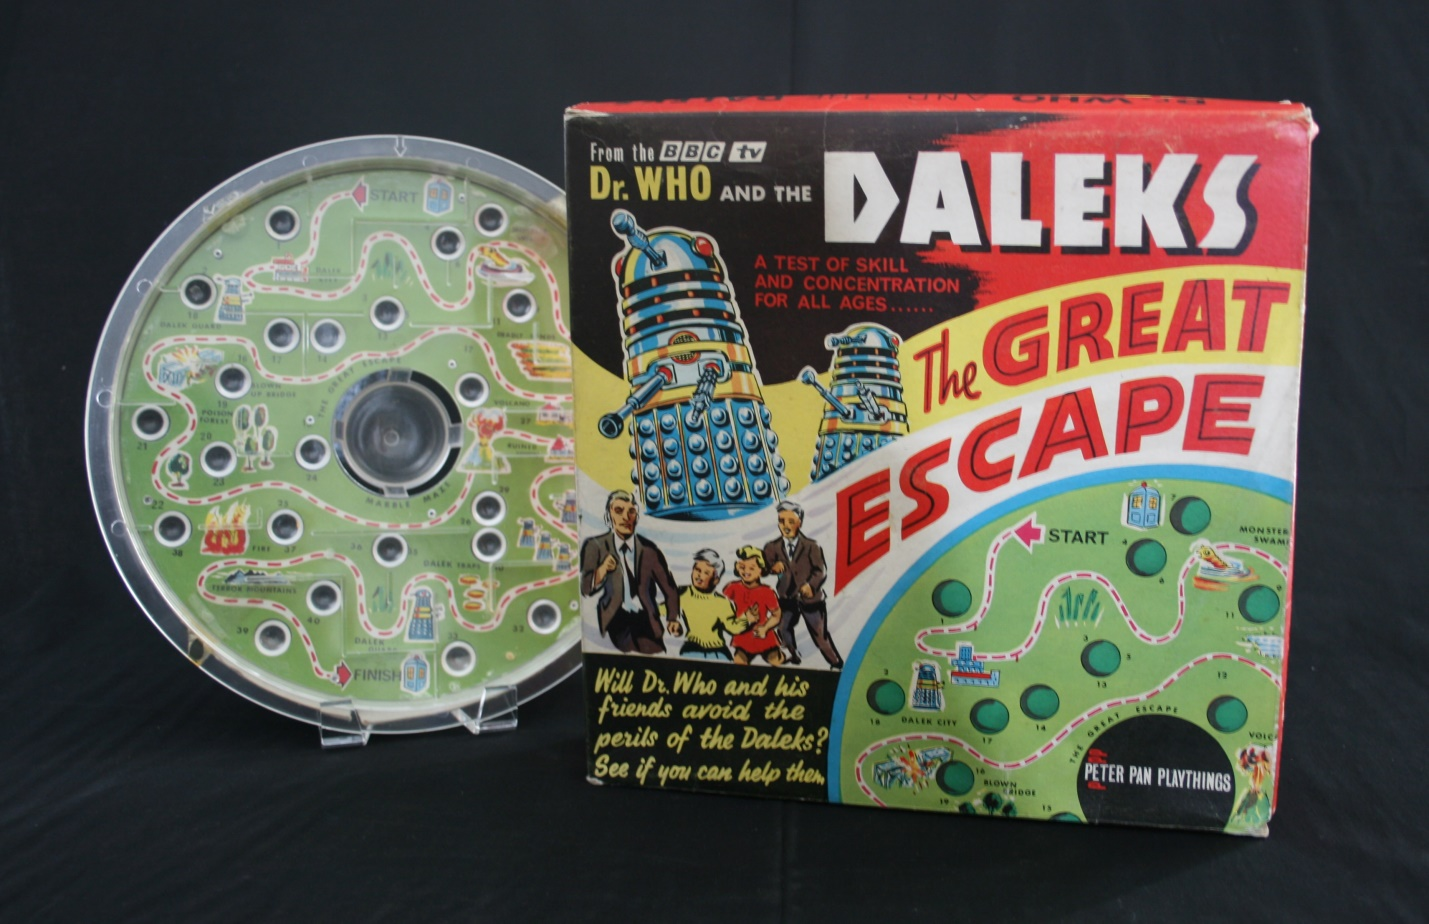 Peter Pan Playthings Ltd., Dr. Who and the Daleks, The Great Escape